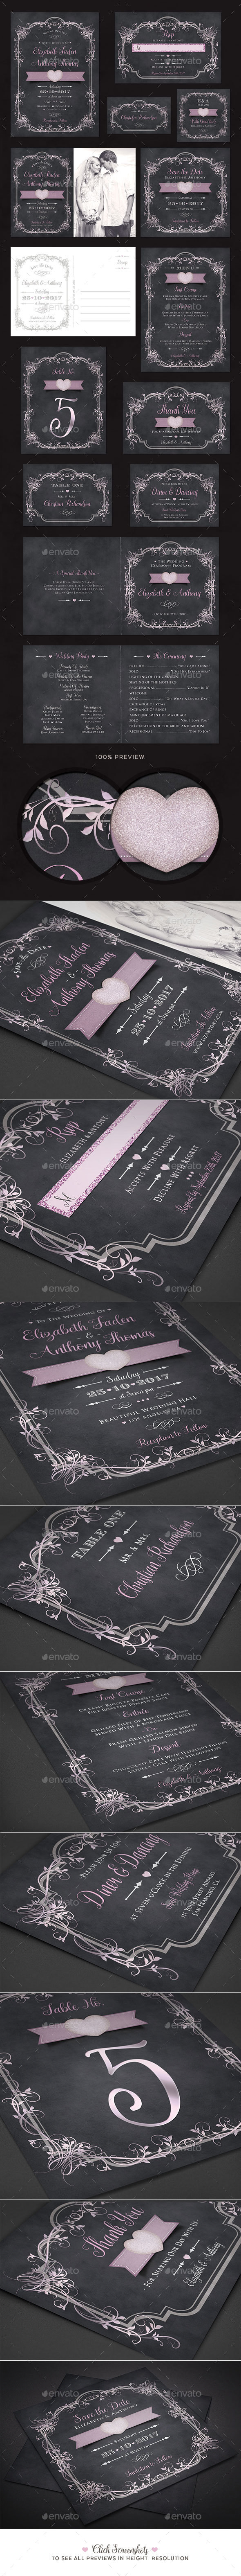 Romantic Wedding Pack - Weddings Cards & Invites